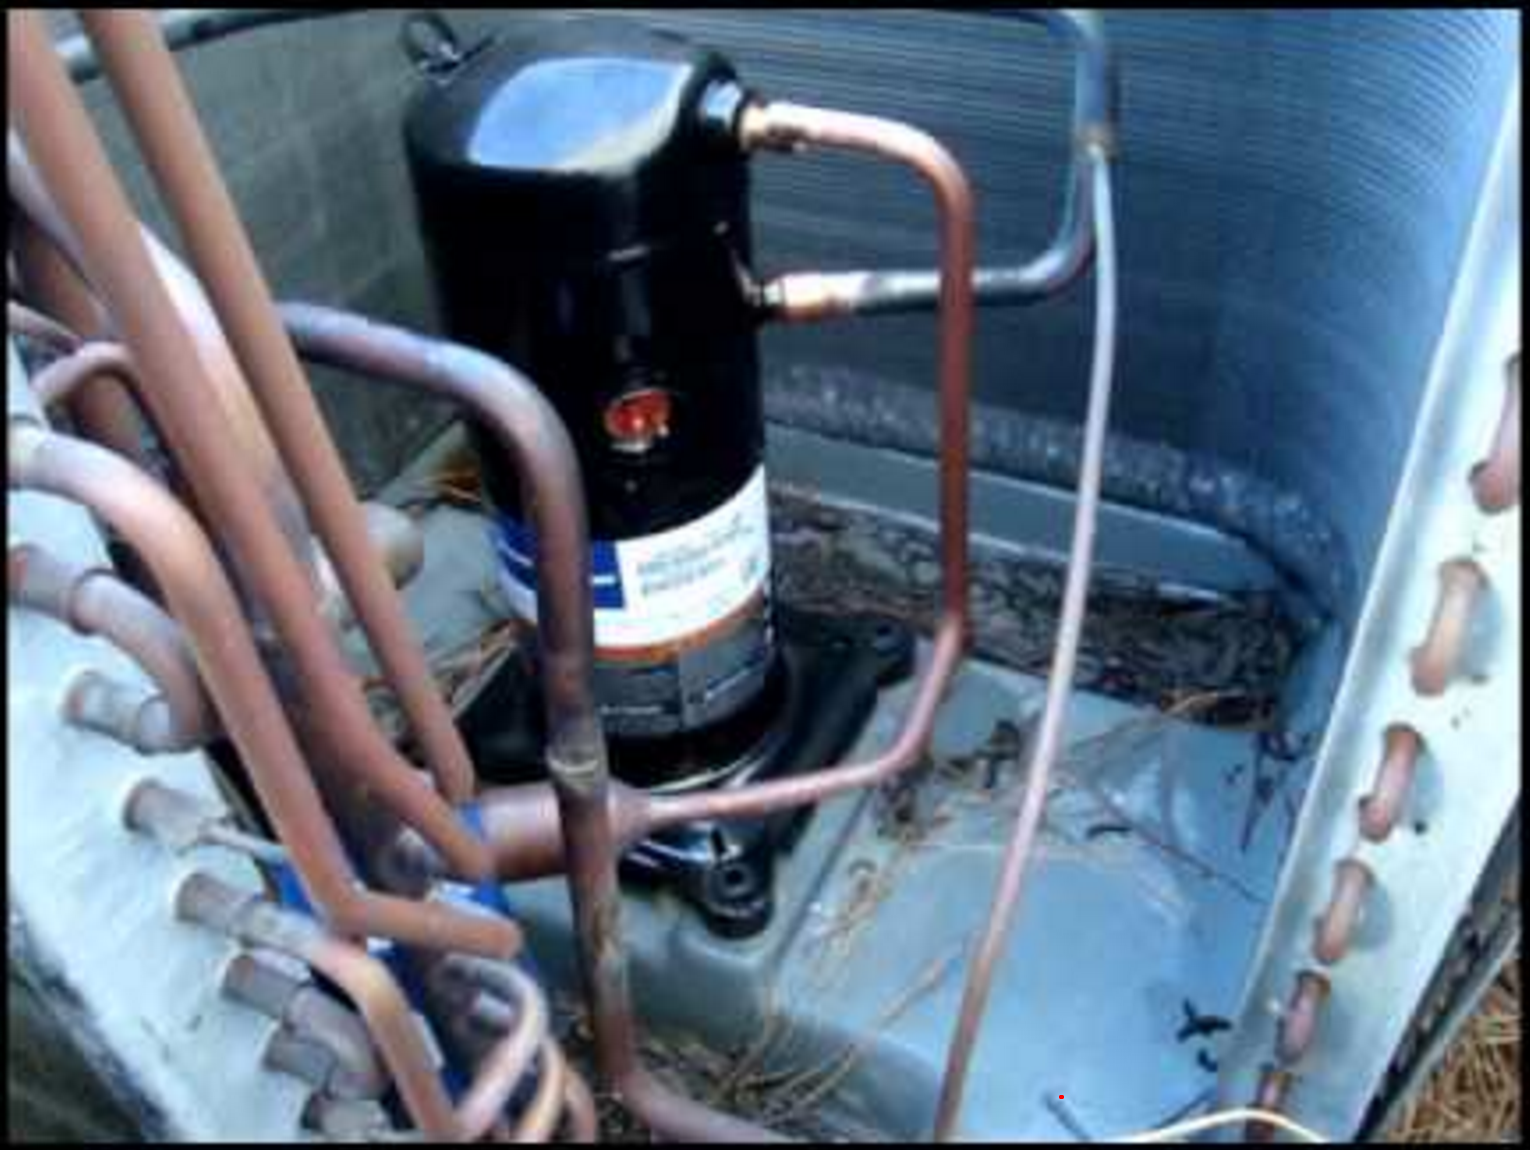 diagnosing issues in a 3 phase air conditioning compressor hvac braincompressor within an ac unit